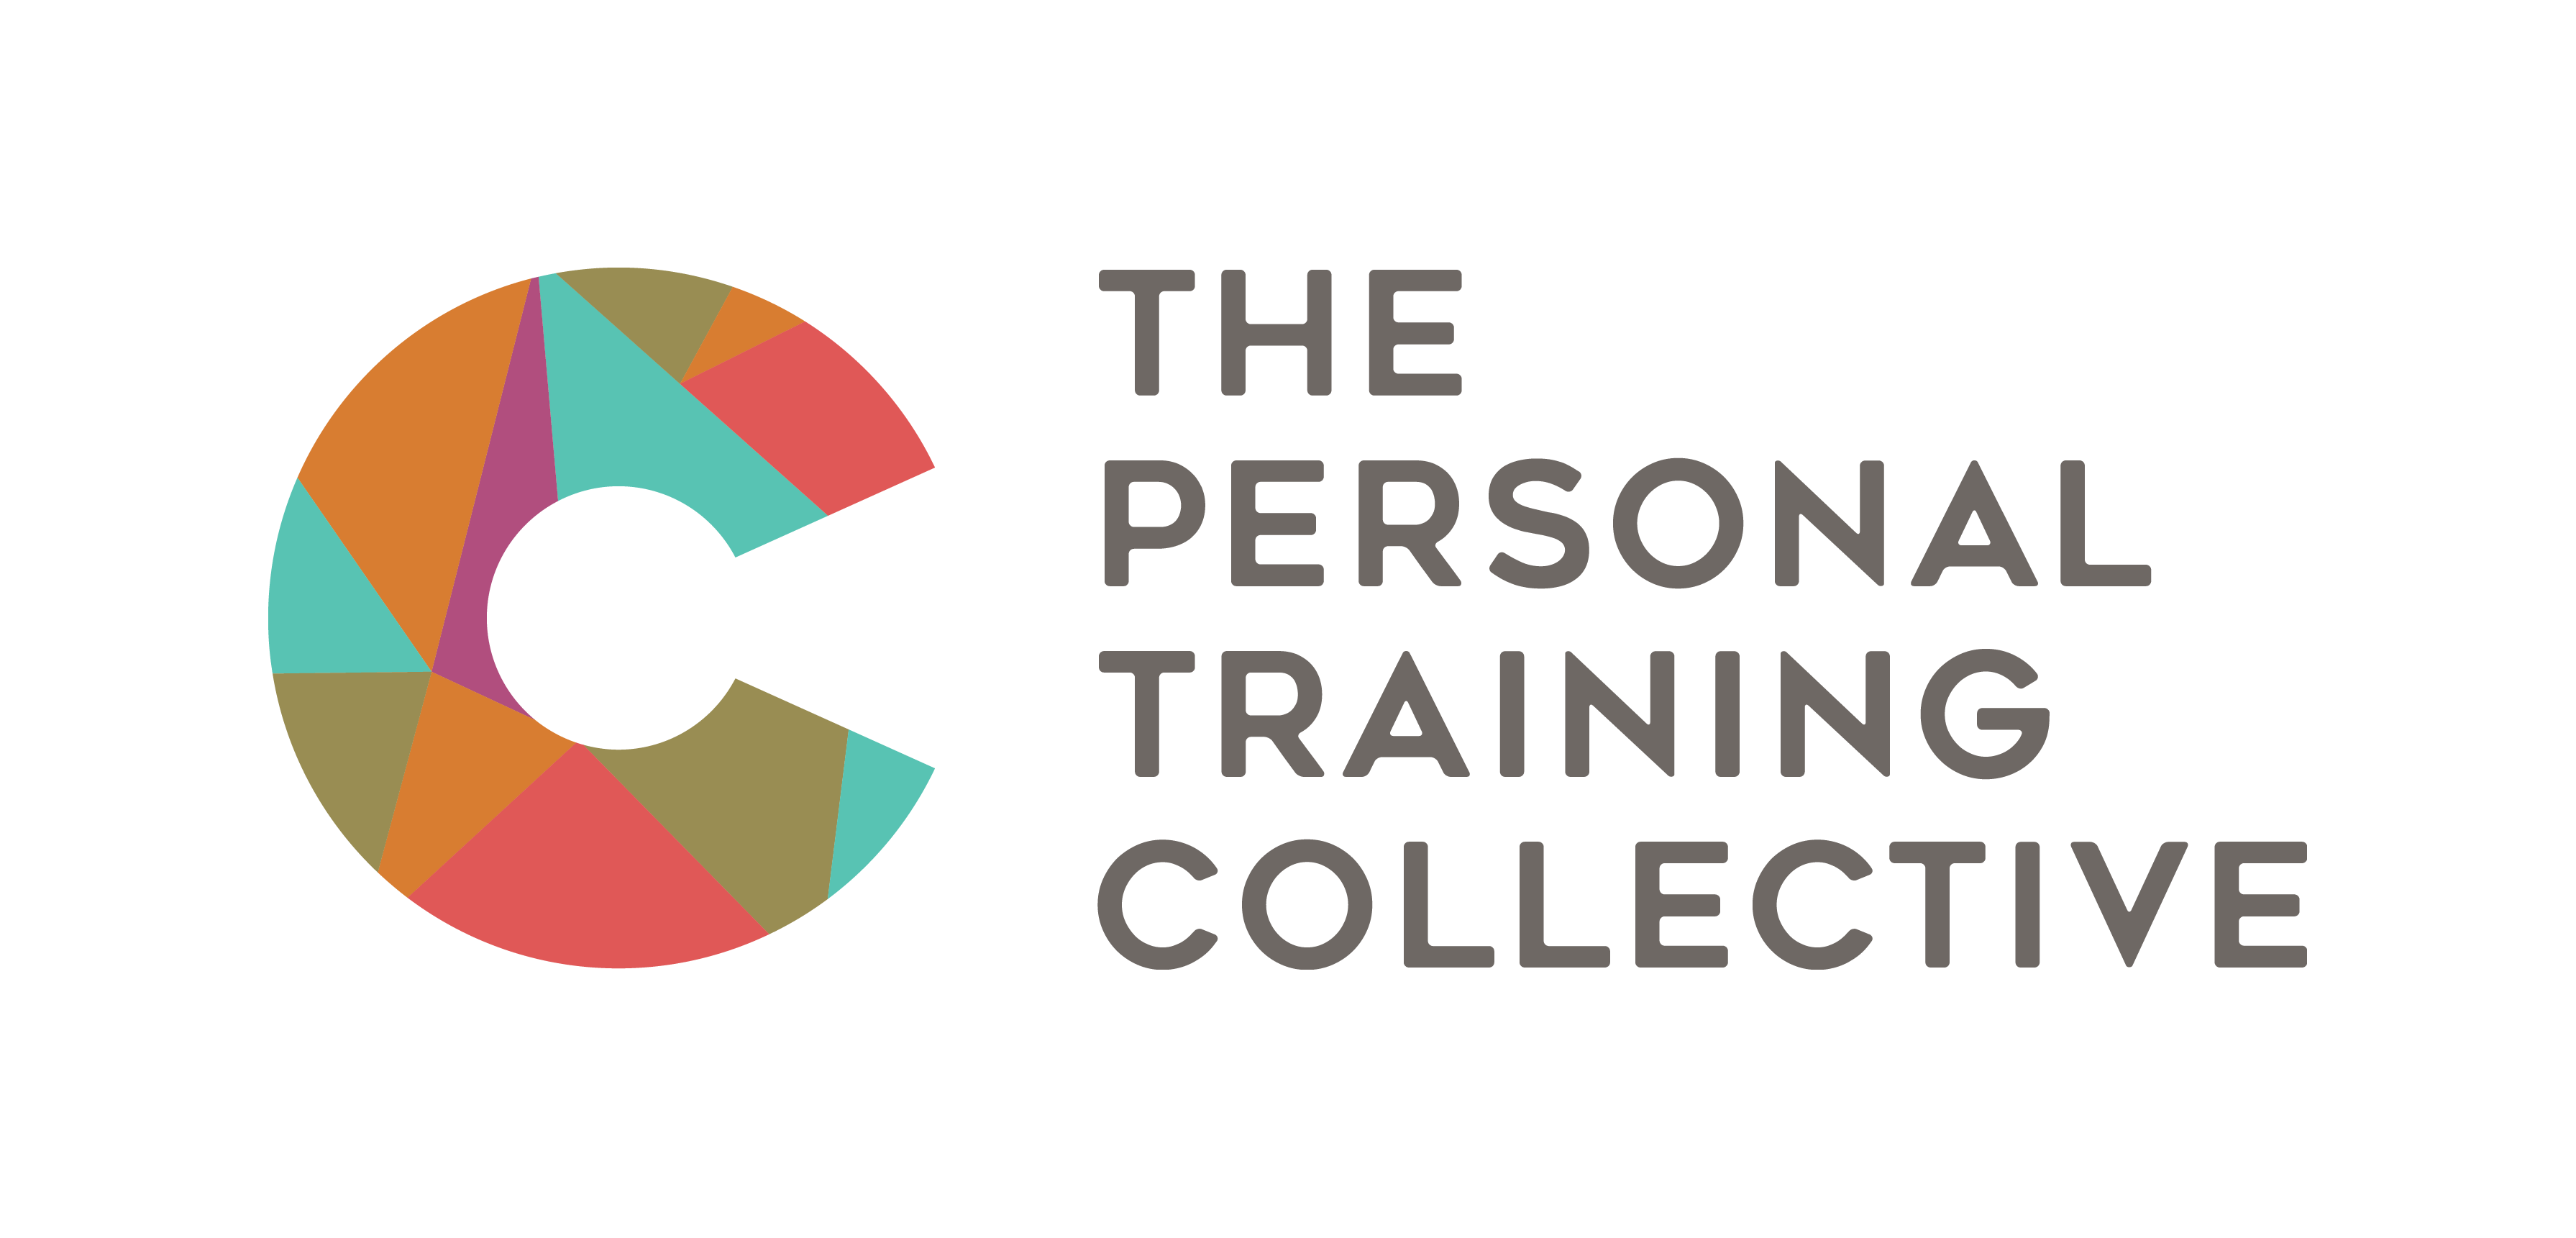 The Personal Training Collective